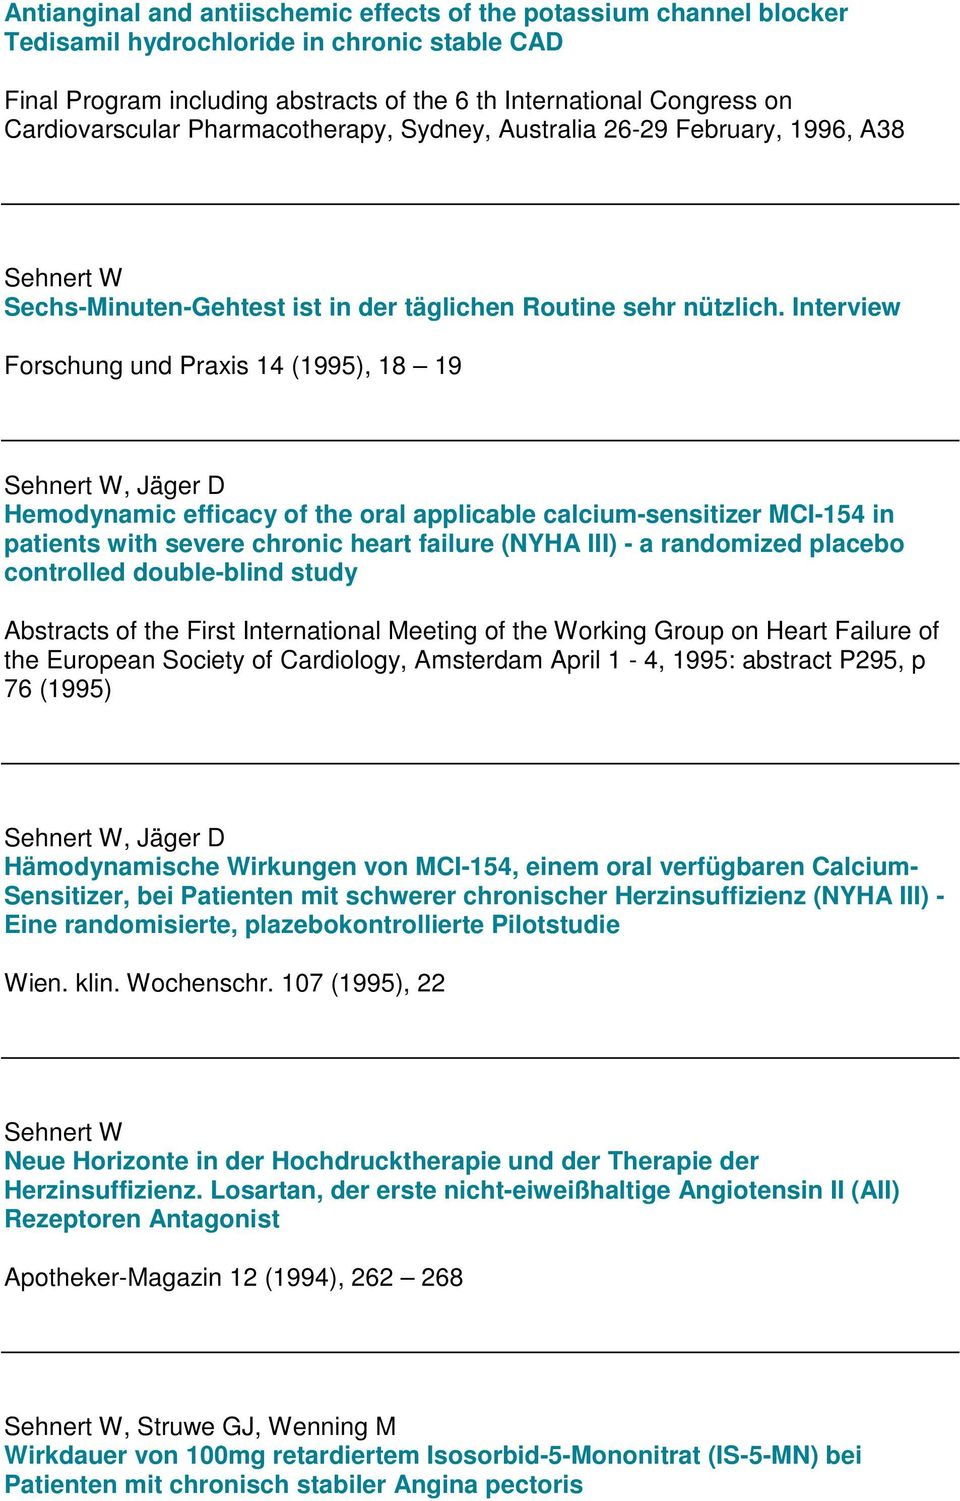 Interview Forschung und Praxis 14 (1995), 18 19, Jäger D Hemodynamic efficacy of the oral applicable calcium-sensitizer MCI-154 in patients with severe chronic heart failure (NYHA III) - a randomized